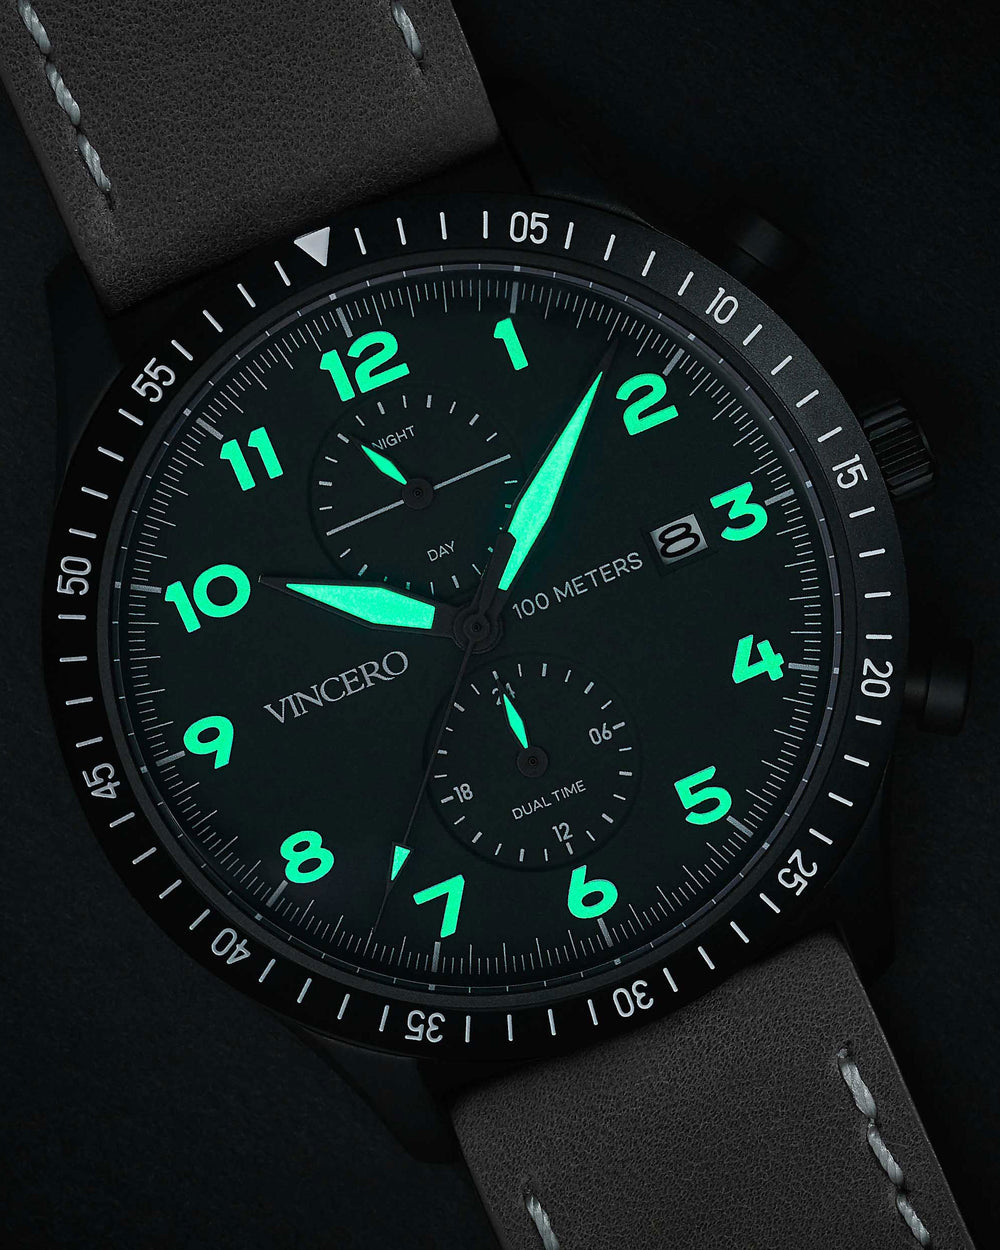 Men's Luxury Altitude Pilot Watch Desert Gray Italian Leather Strap Band Black Watch Face Matte Black Clasp